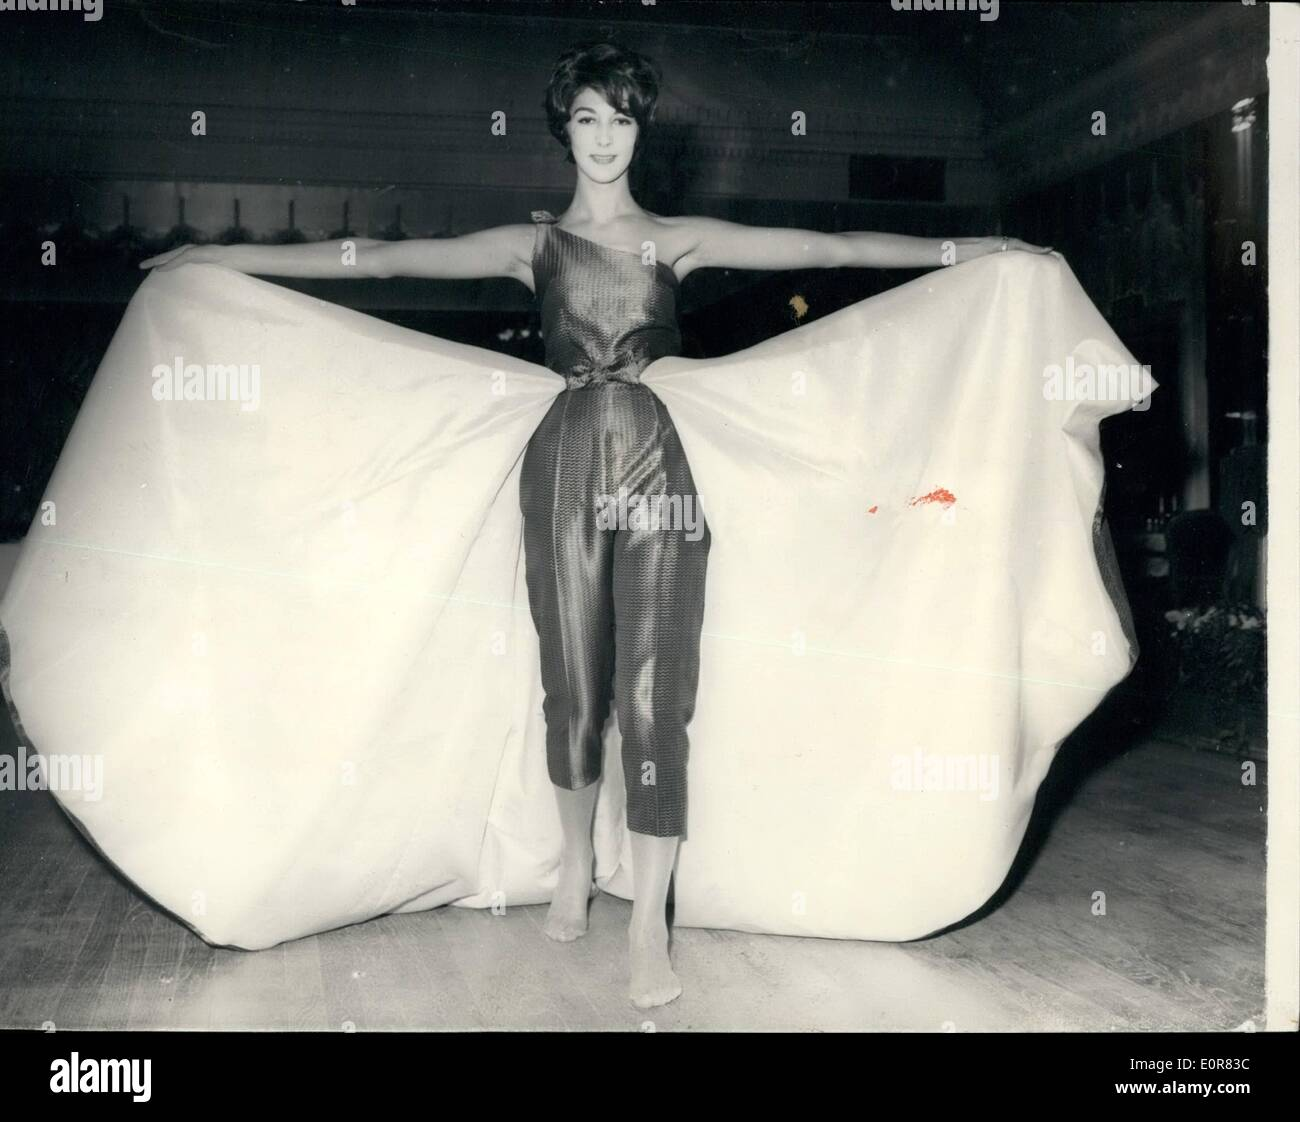 Jul. 07, 1958 - REHEARSAL FOR ''AGE OF BEAUTY BALL'' - AT DORCHESTER.. Deb s and film starlets - acting as temporary mannequins - Stock Image